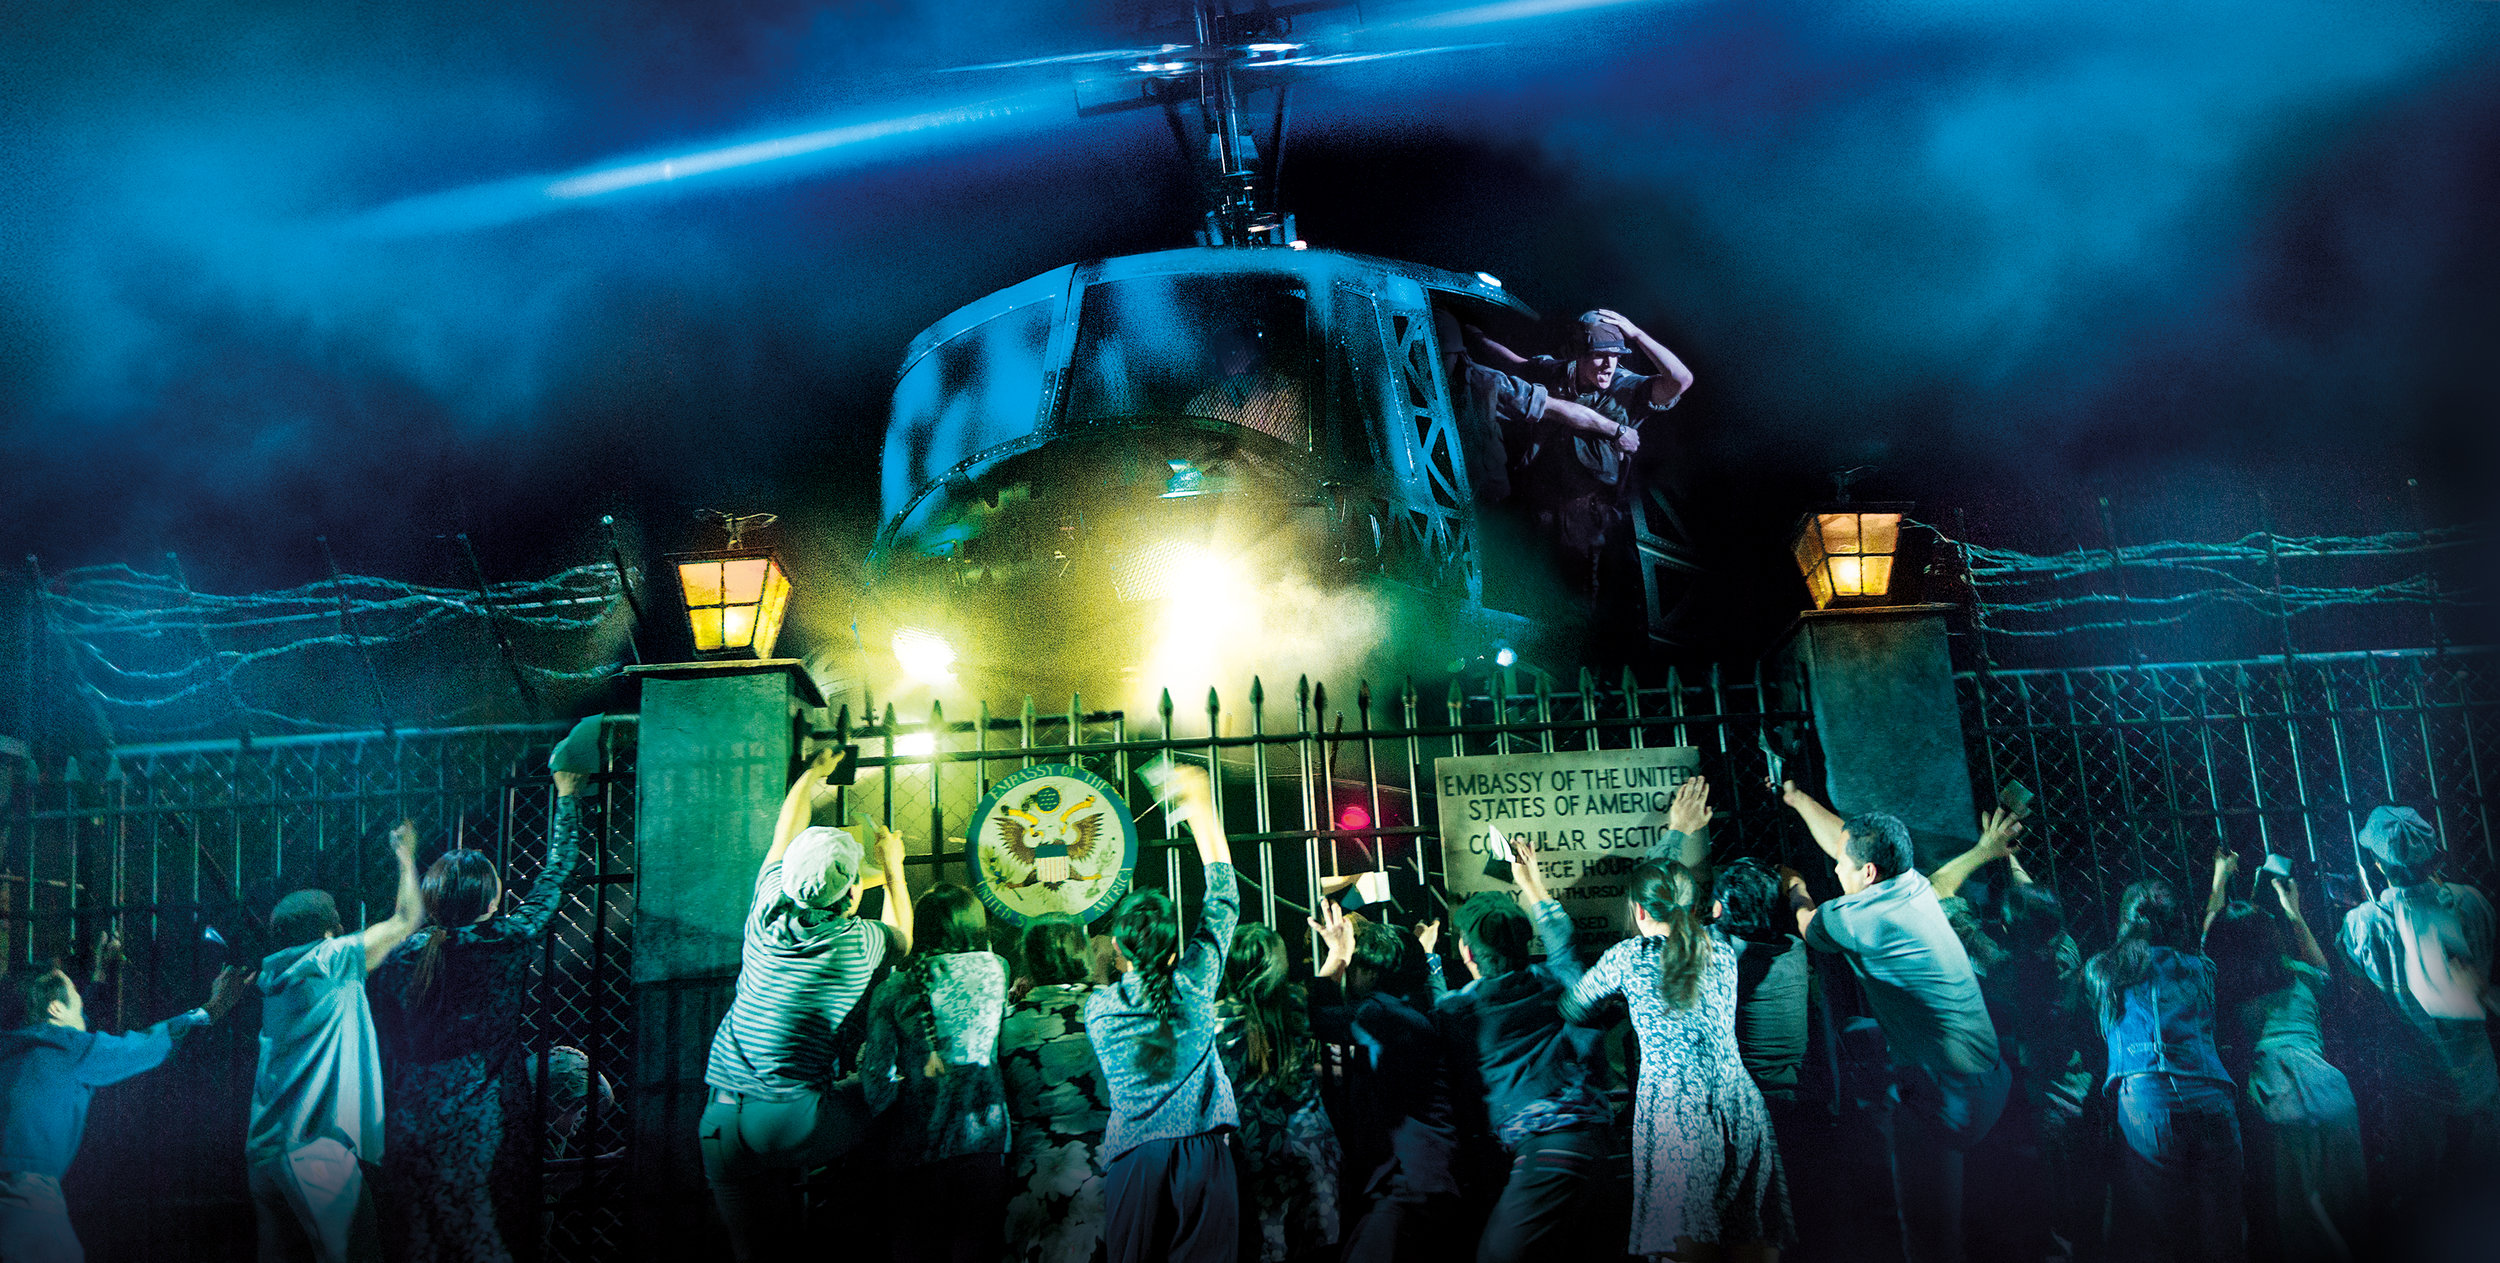 The helicopter lands in 'The Nightmare' in Miss Saigon. Photo by Matthew Murphy and Johan Persson